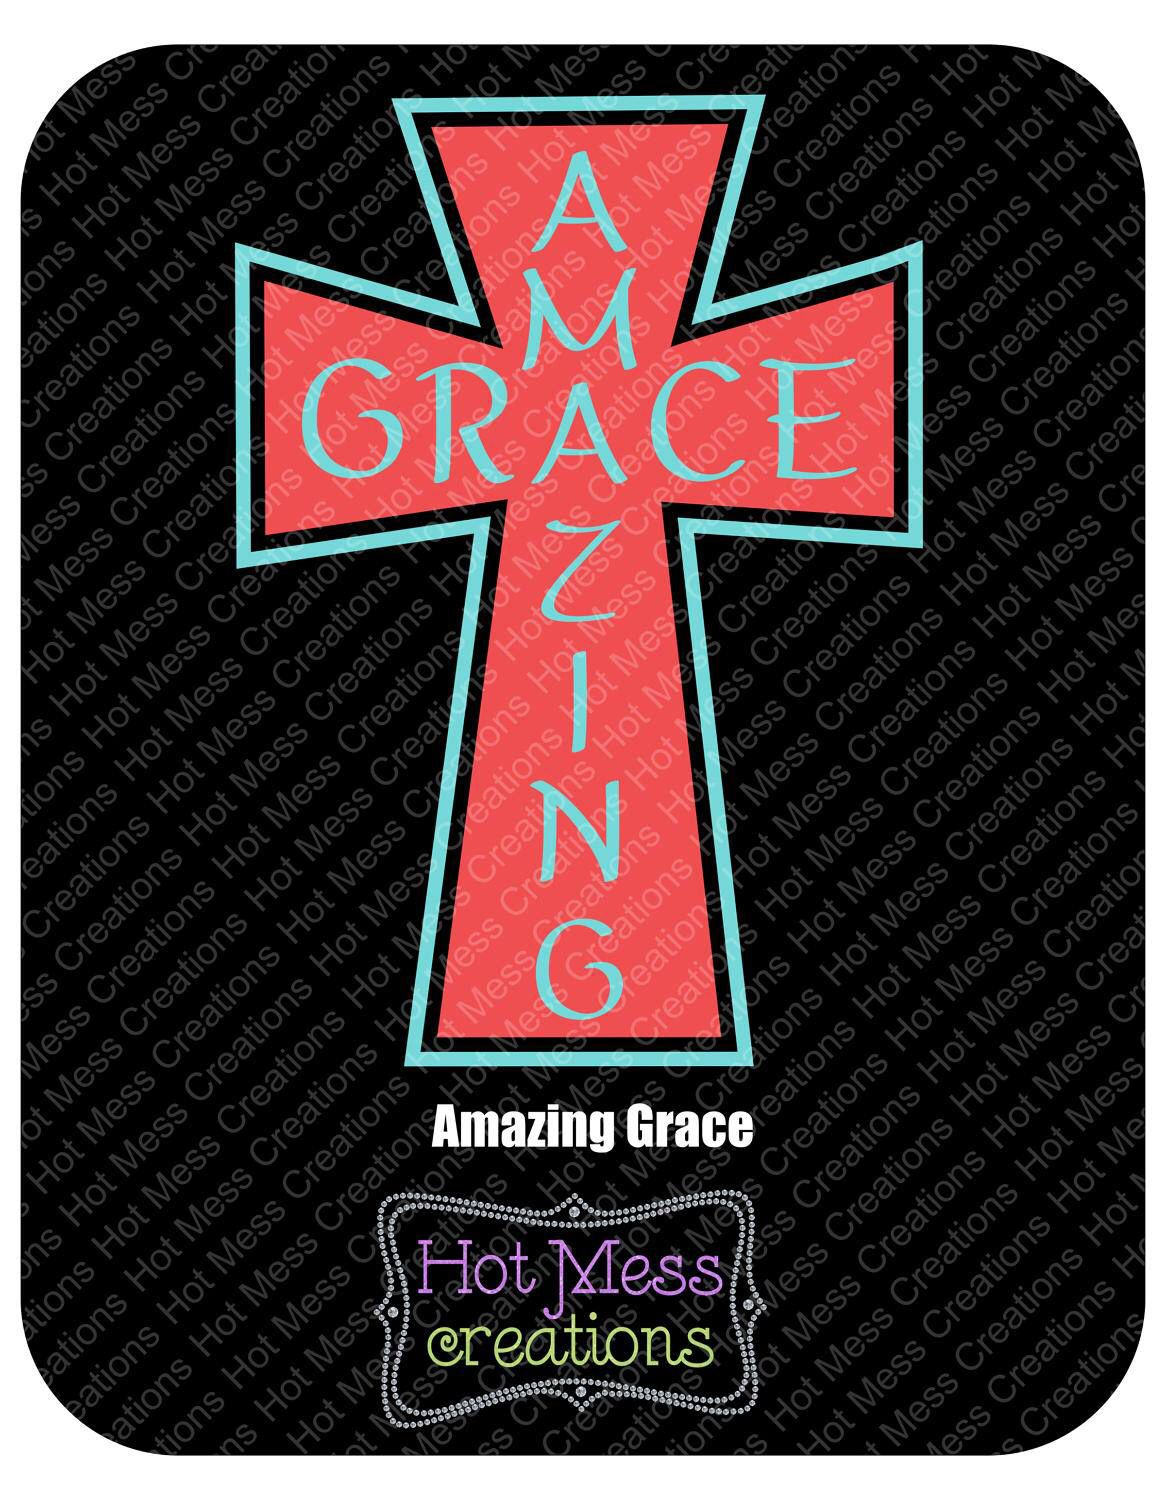 Amazing Grace Digital Artcom